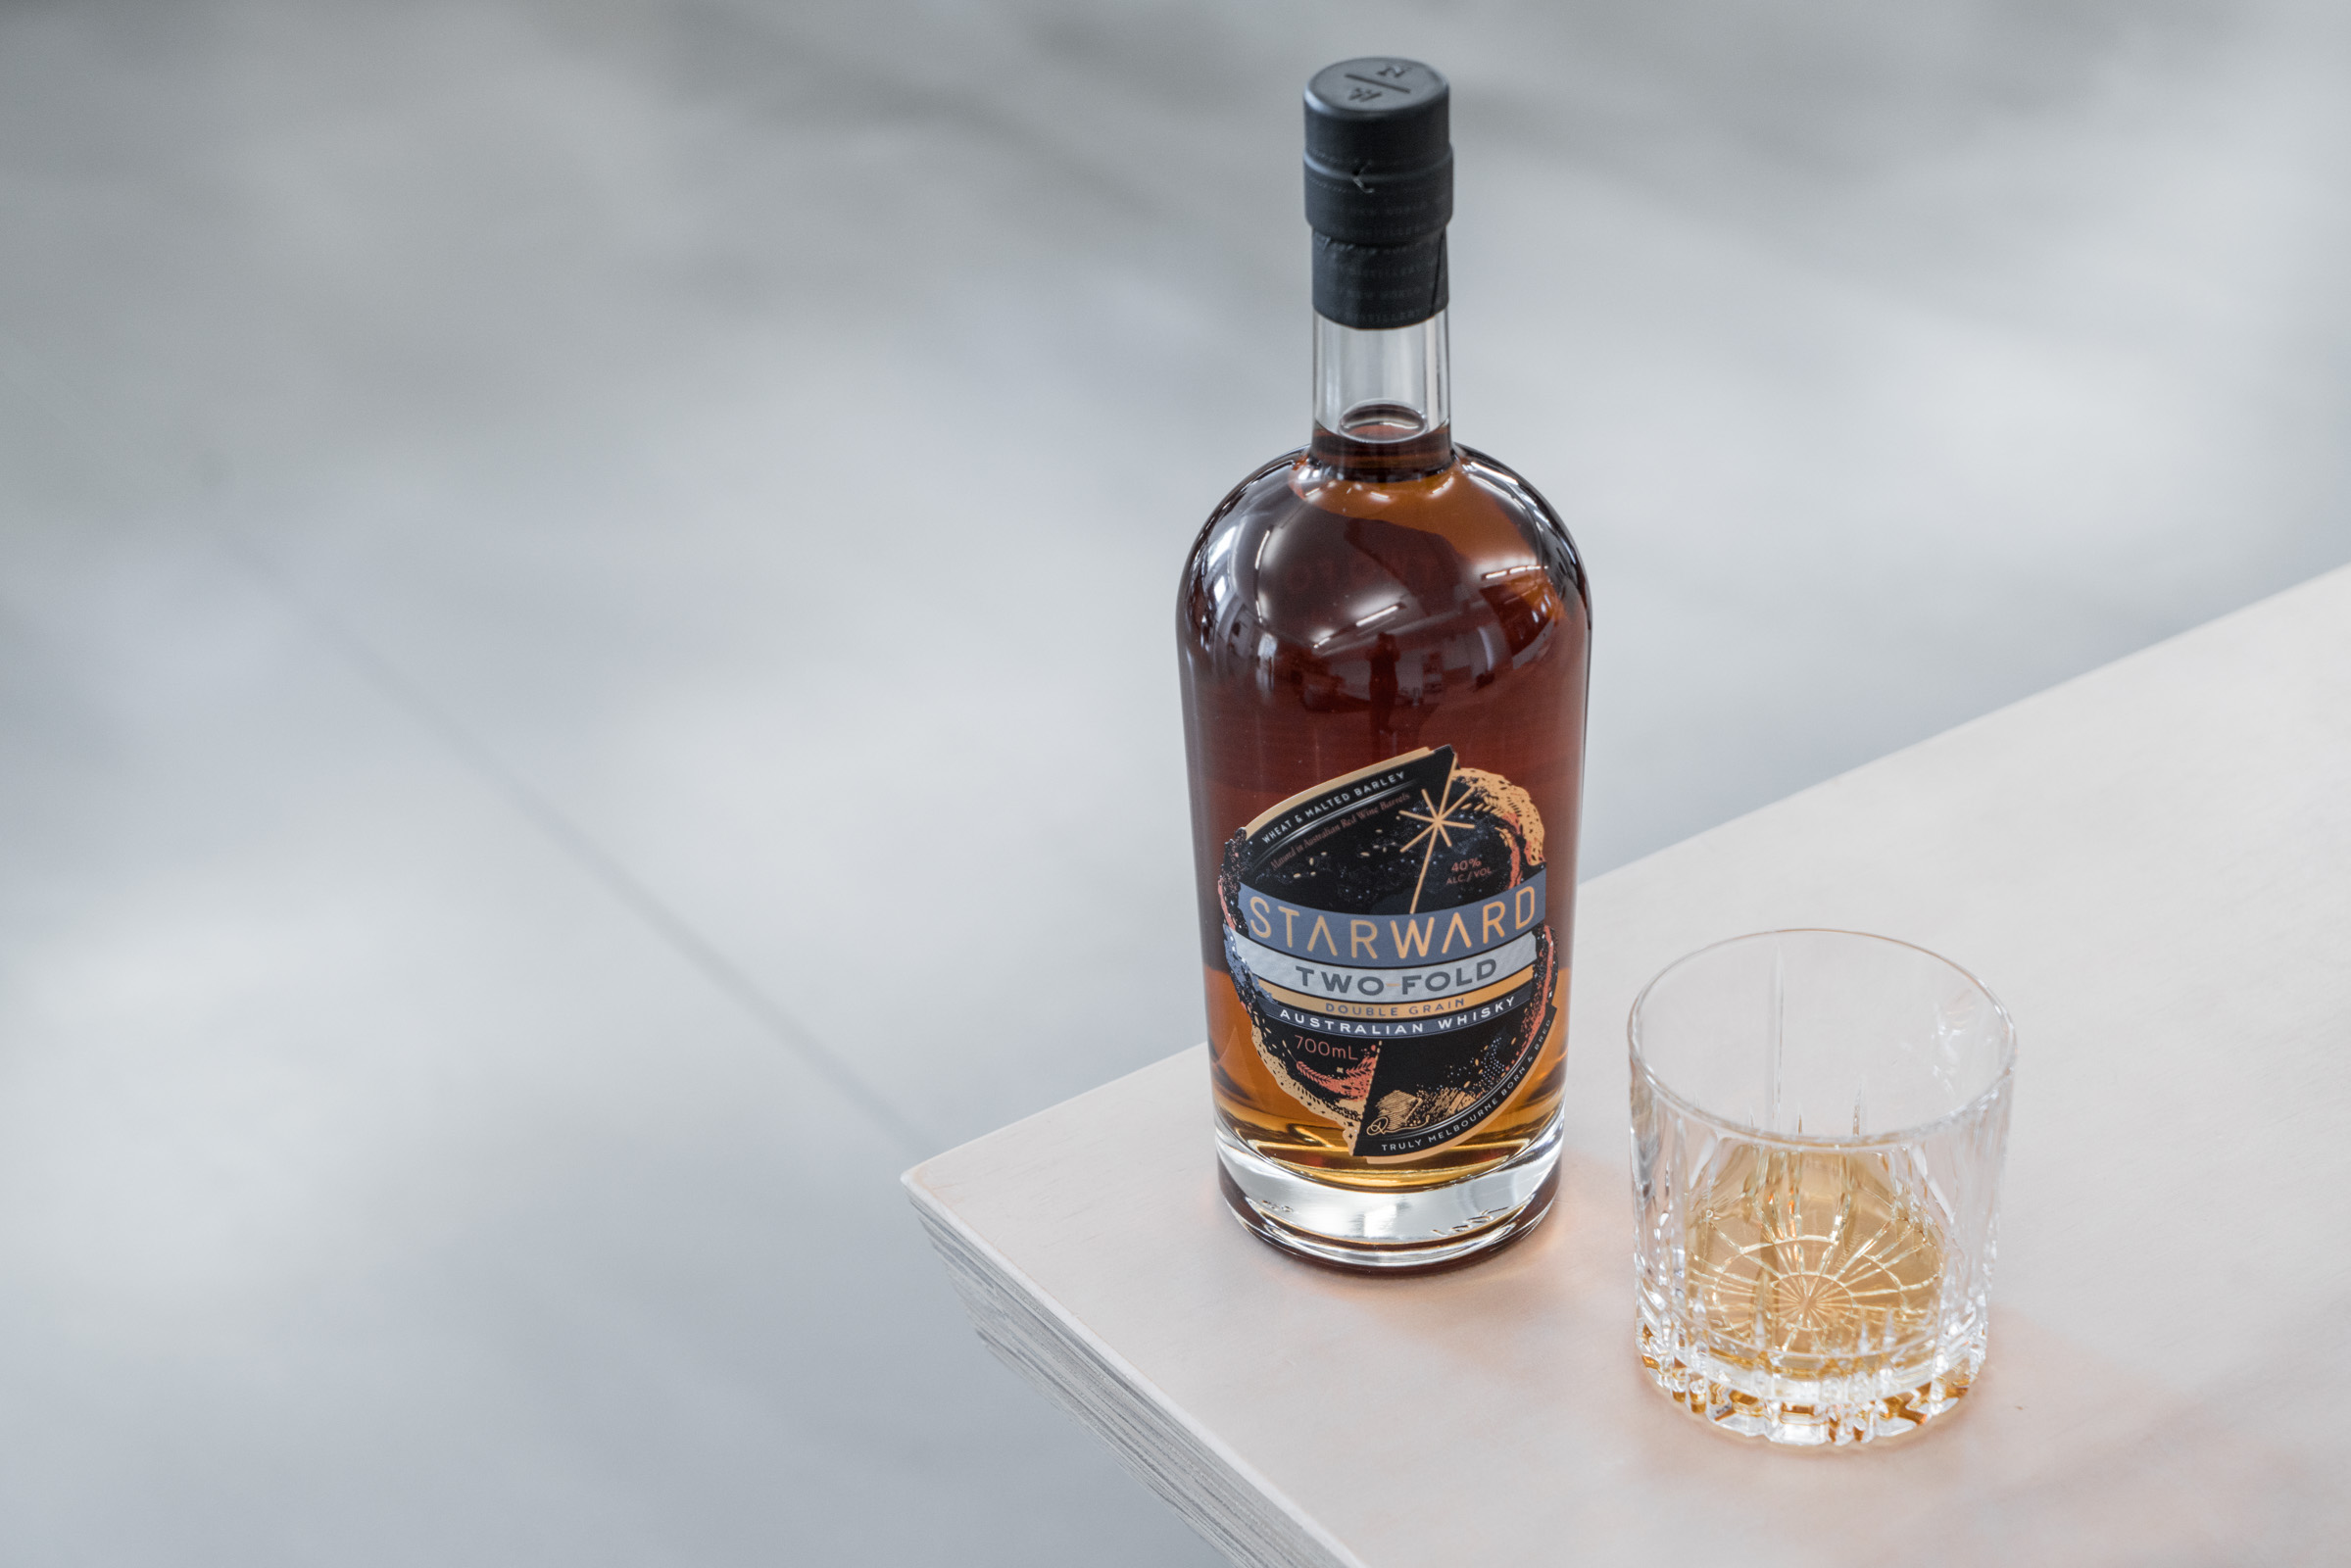 starward-whisky-two-fold-hero